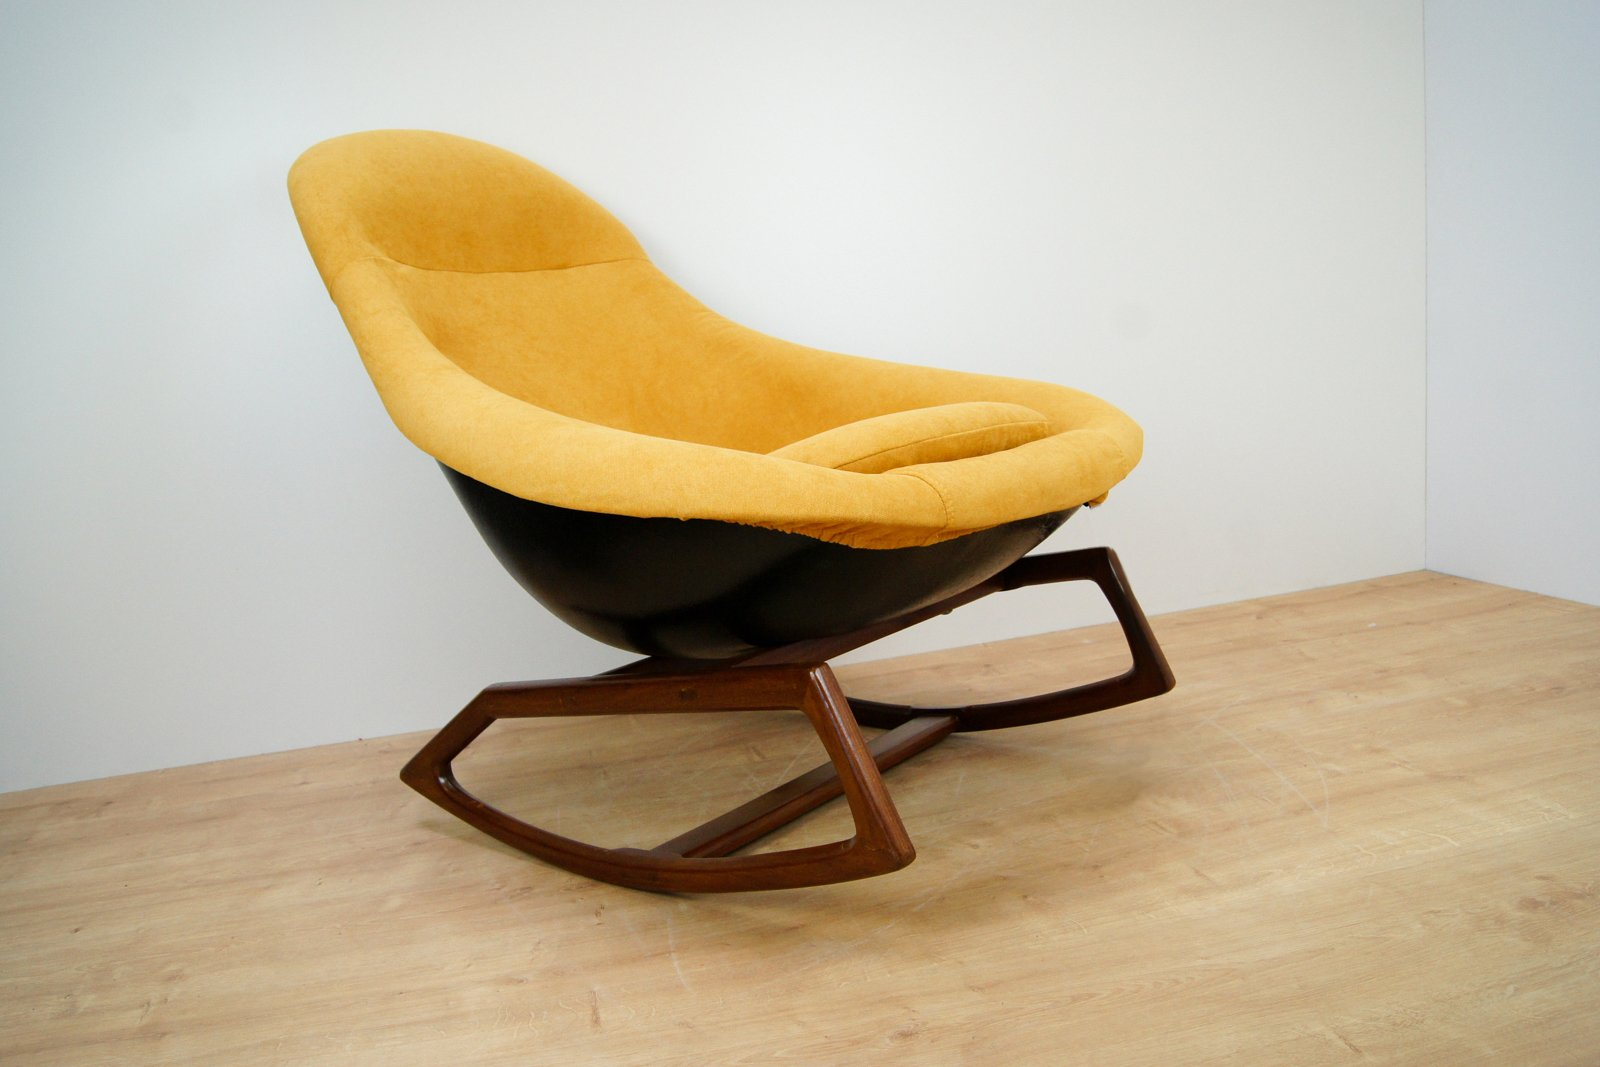 Rocking Chair By W. S. Chenery For Lurashell, 1960s